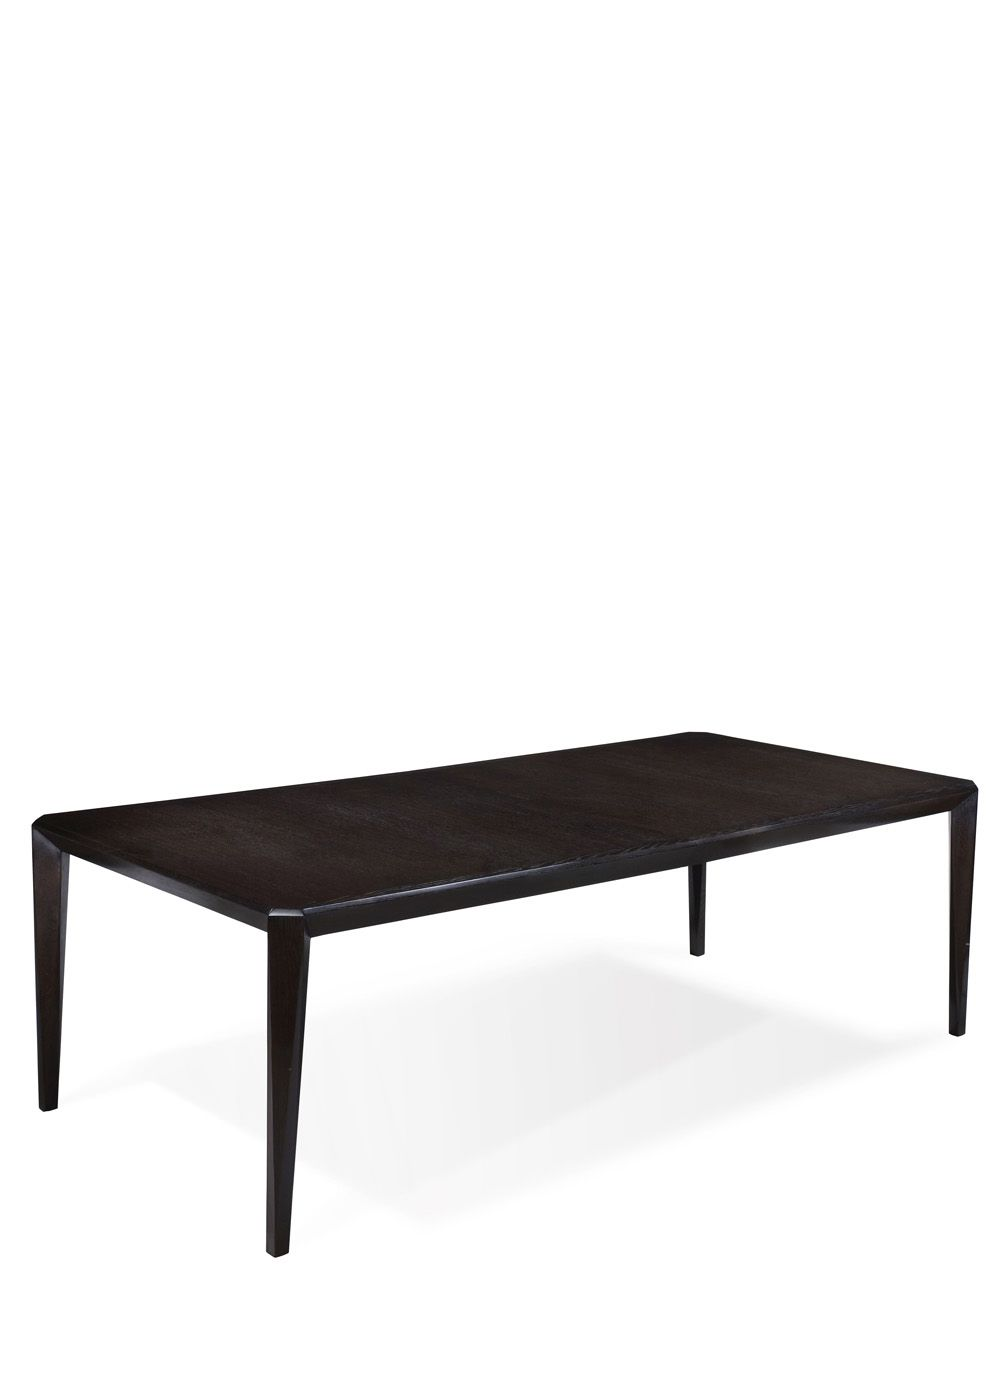 Nagano Dining Table T0815 By Therien Dining Tables Dessin